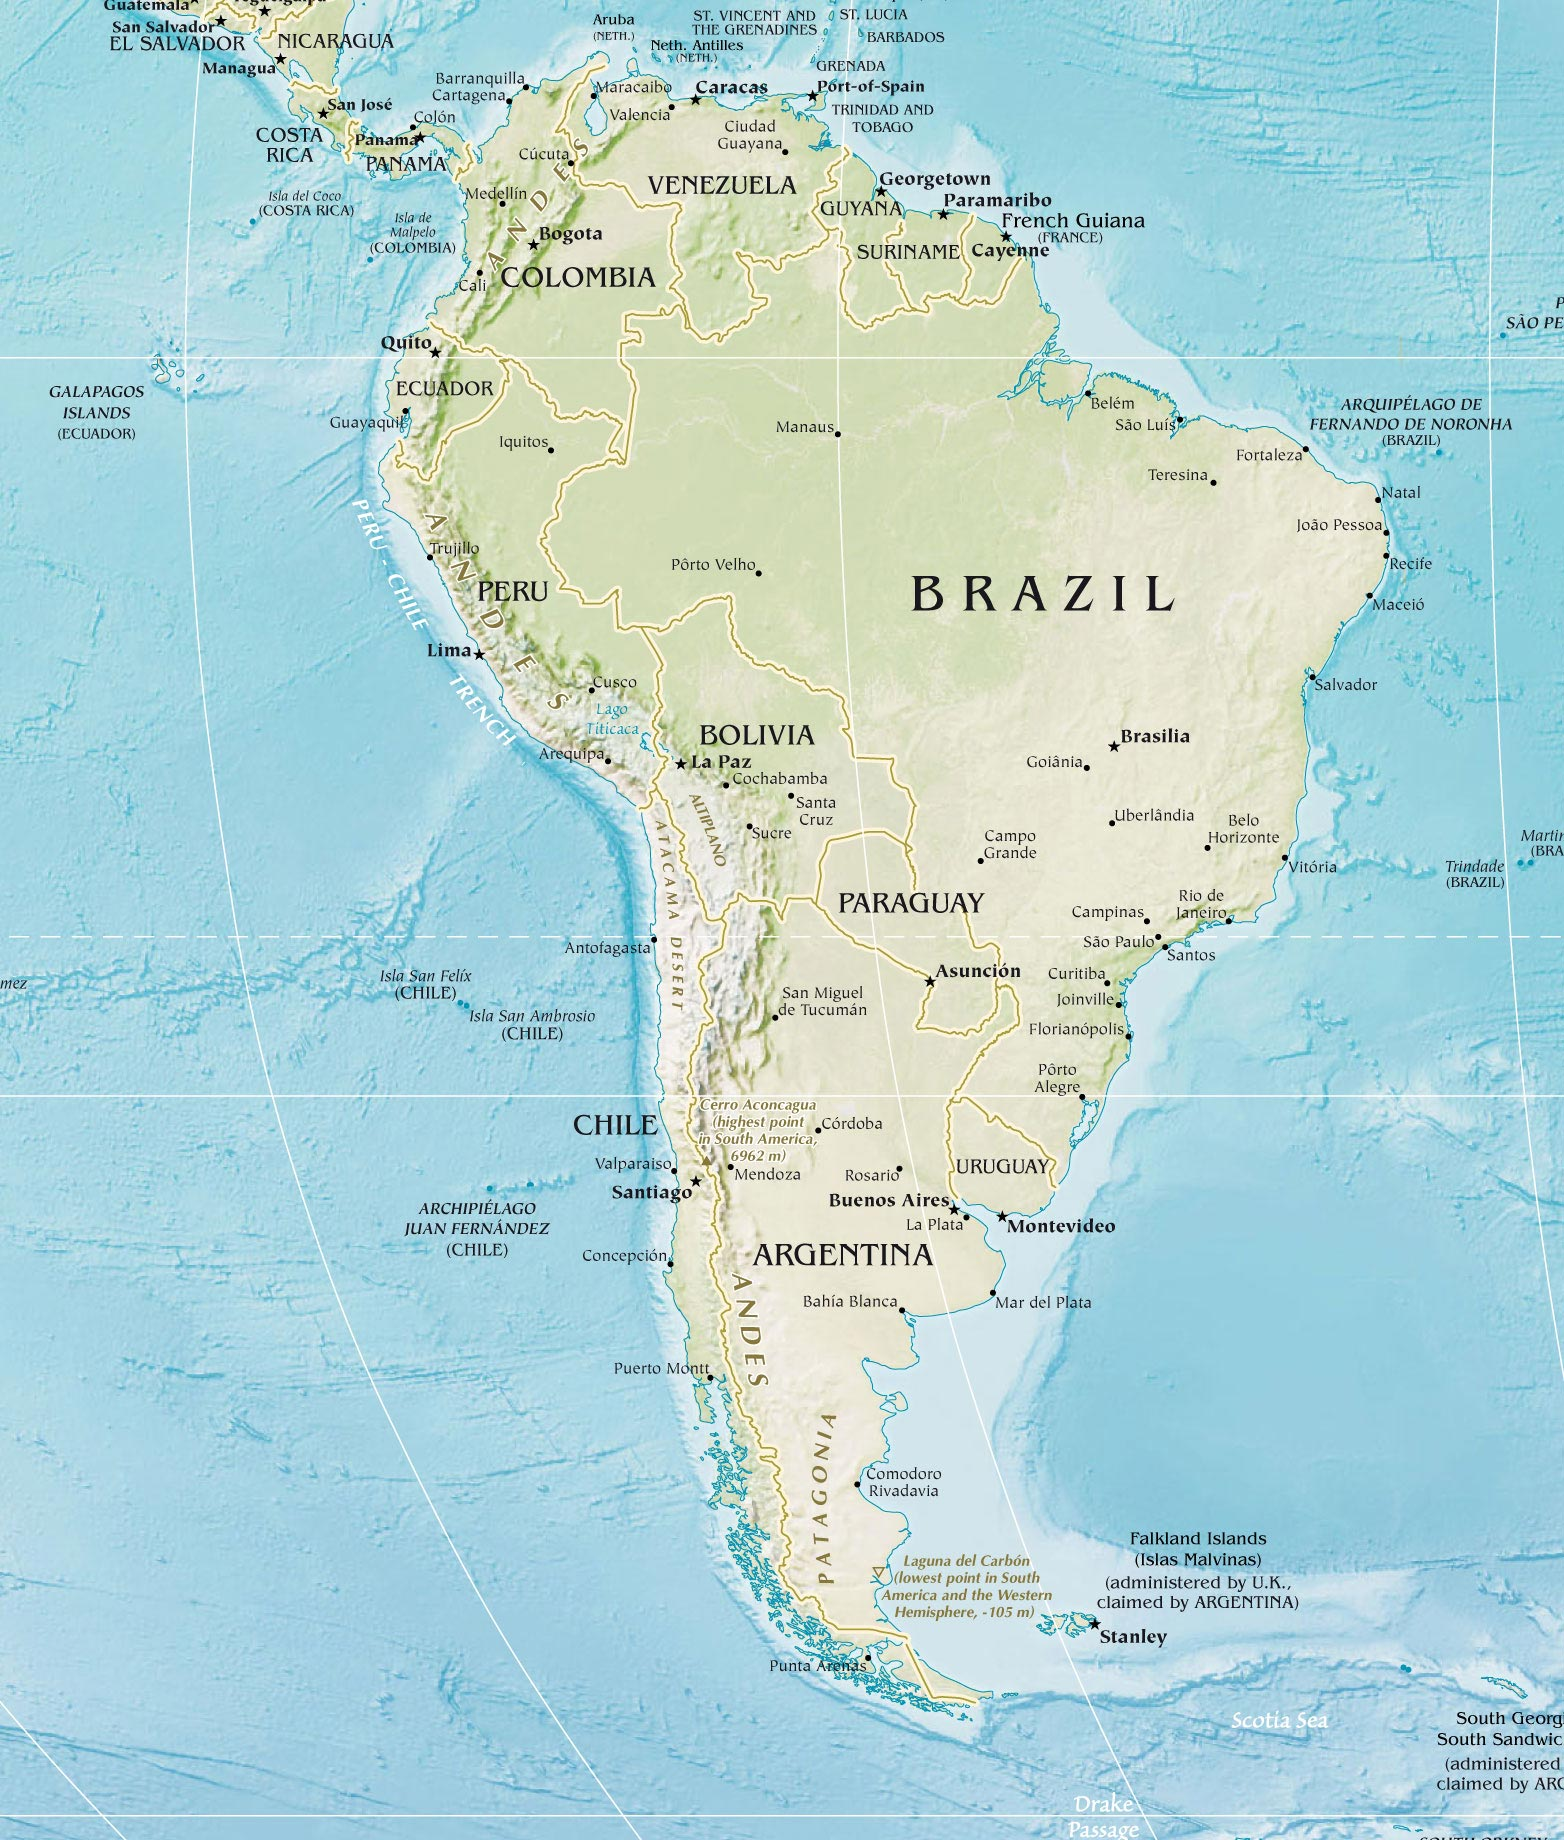 south america physical map 2 u2022 mapsof net